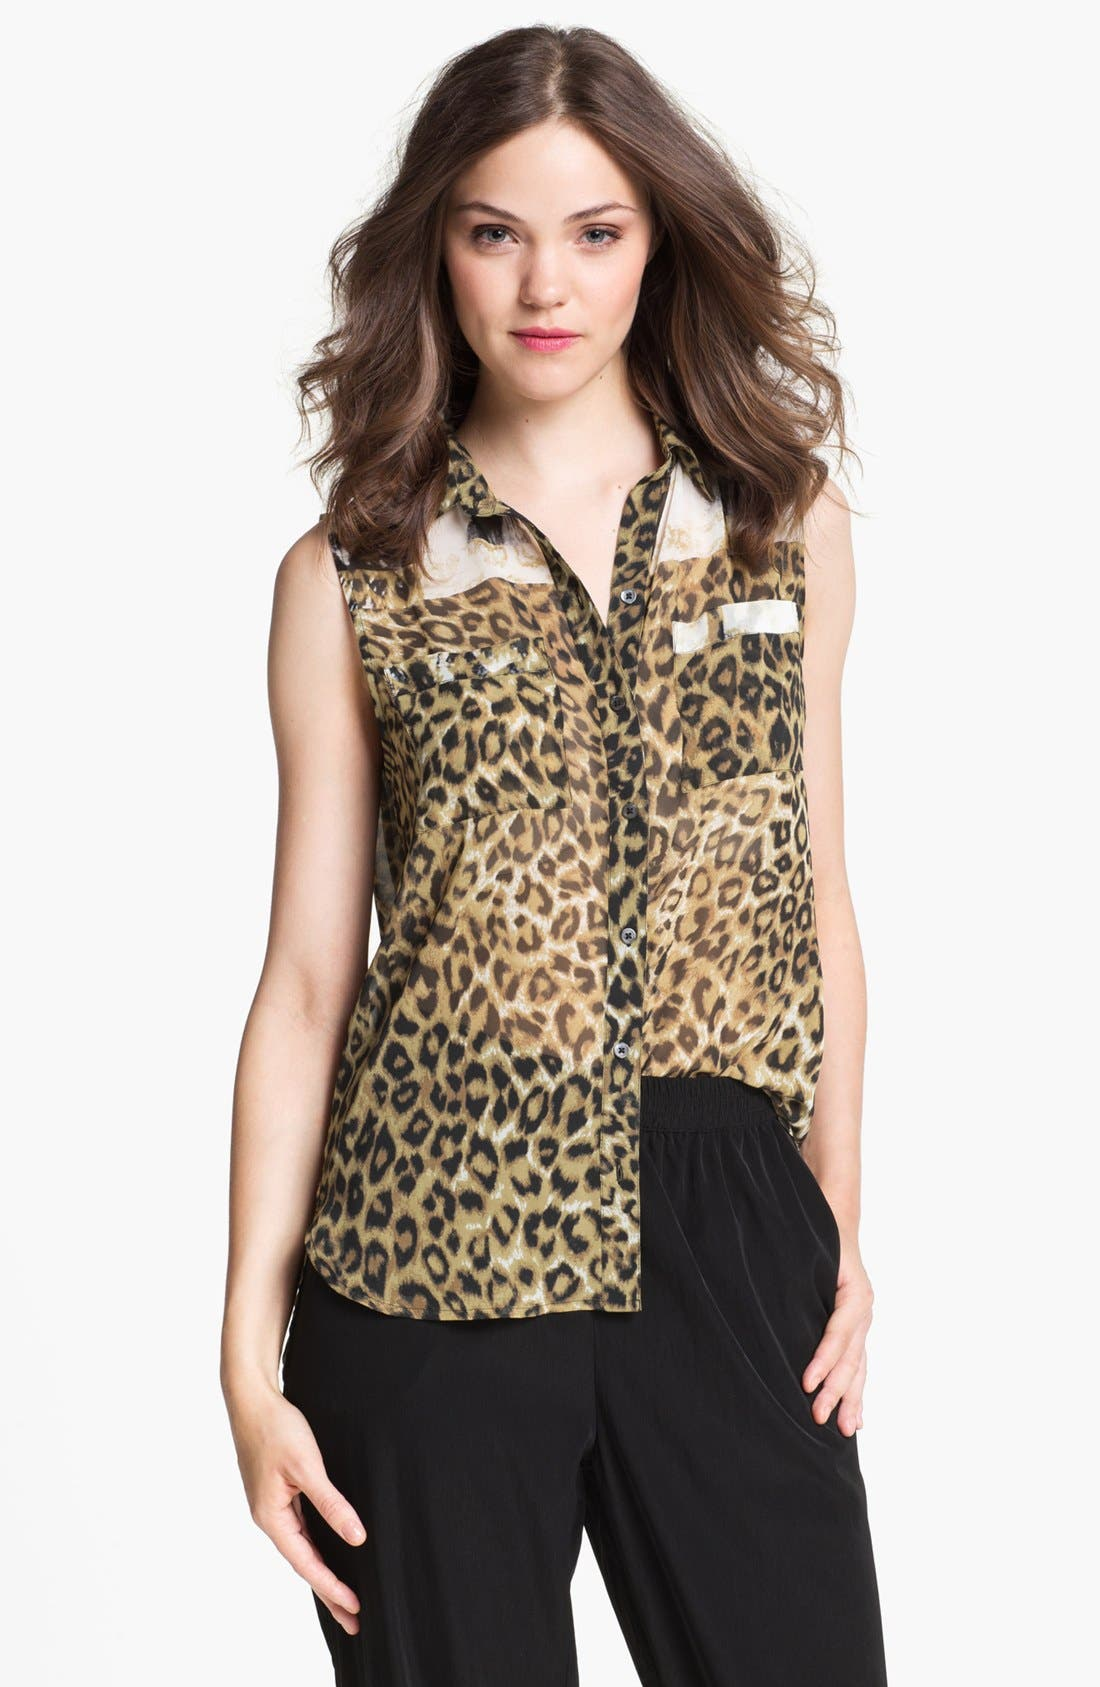 Alternate Image 1 Selected - Kenneth Cole New York 'Krissy' Animal Print Blouse (Online Only)